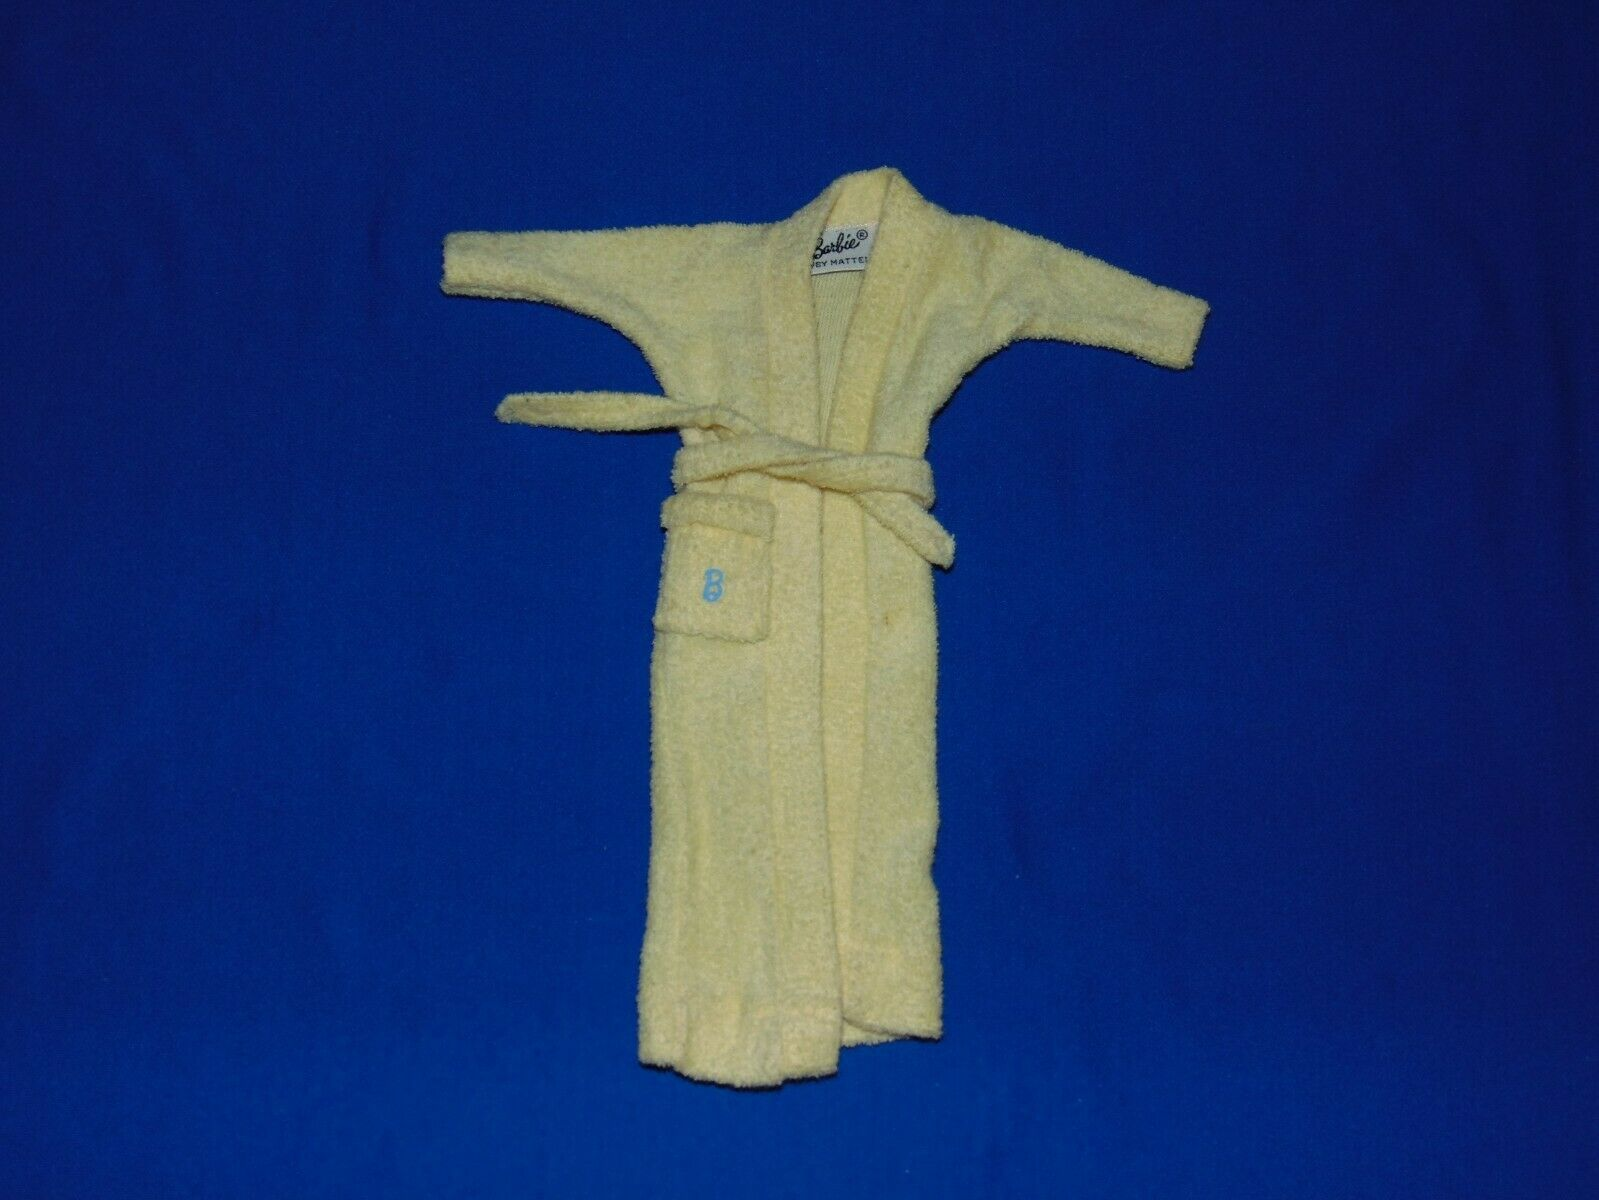 VINTAGE BARBIE SINGING IN THE SHOWER ROBE YELLOW BATHROBE - $14.99